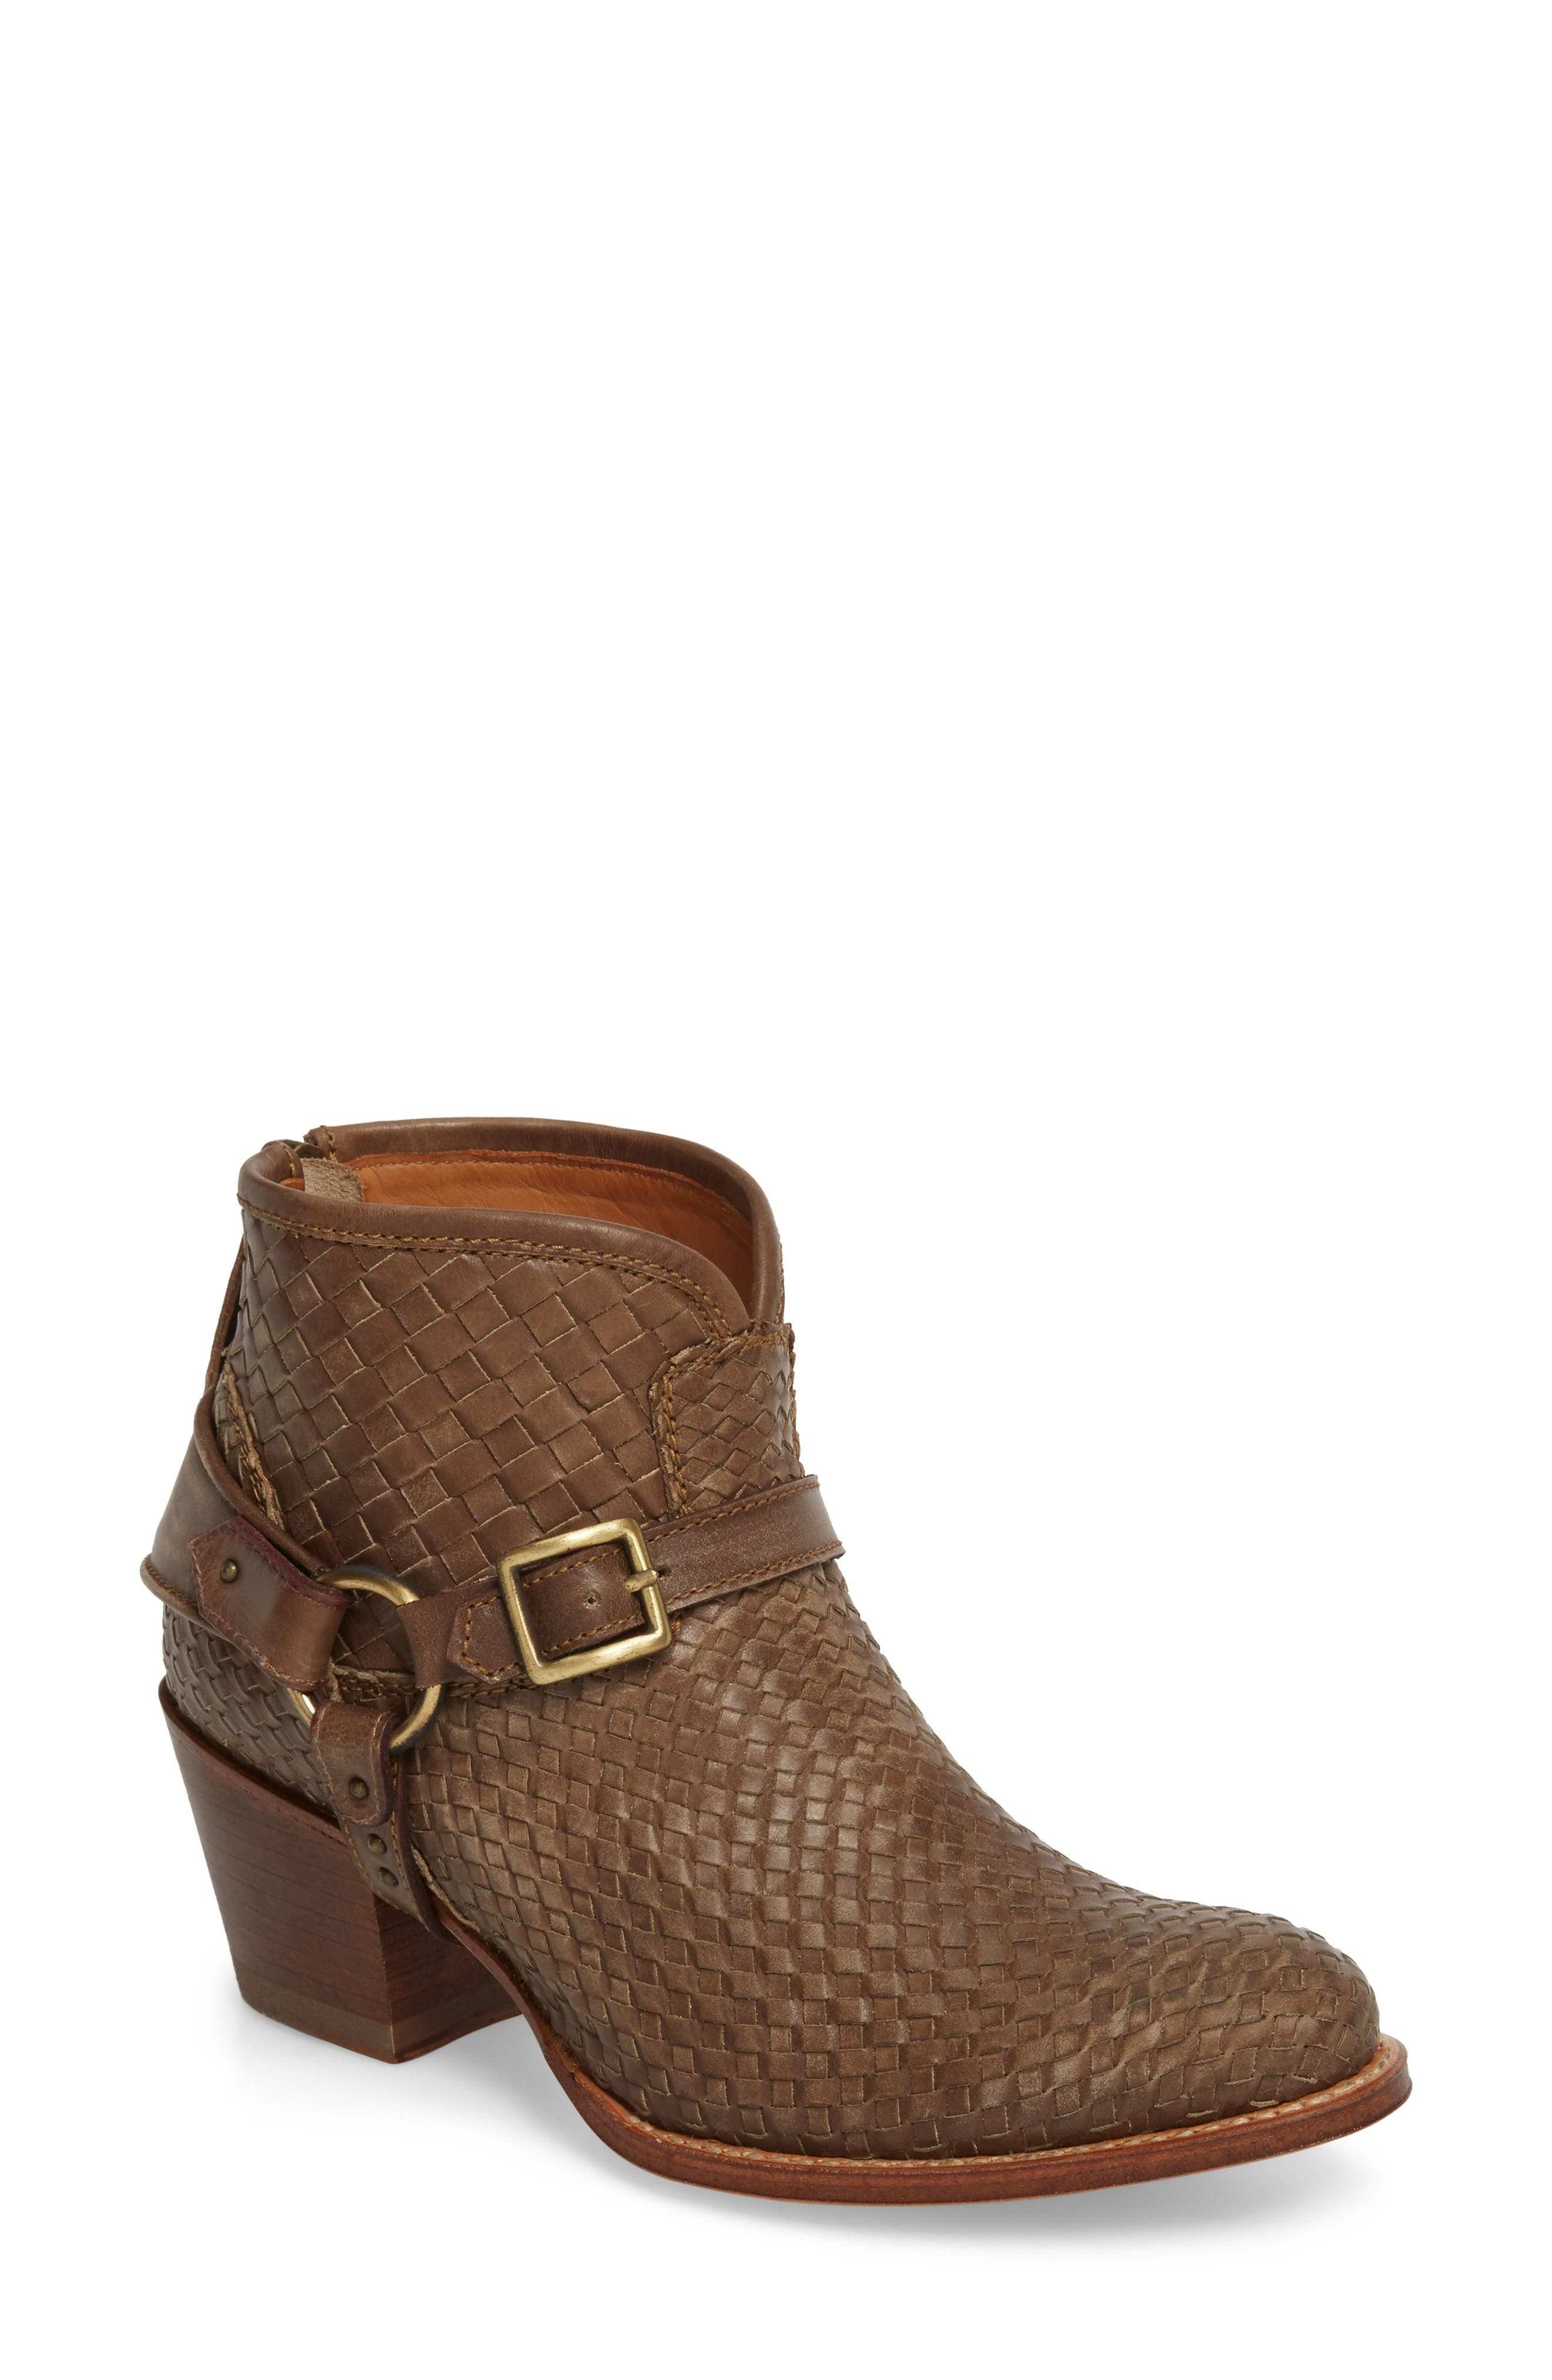 Two24 by Ariat Sollana Bootie,                             Main thumbnail 1, color,                             200